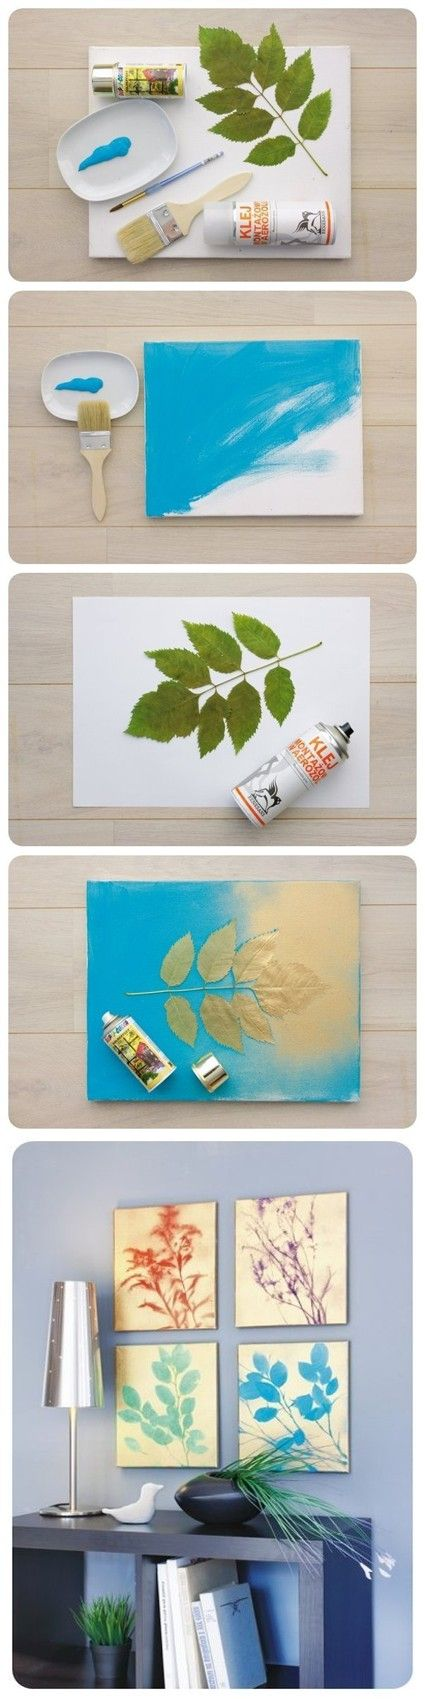 Leafs. I am soooooooo tryin this!